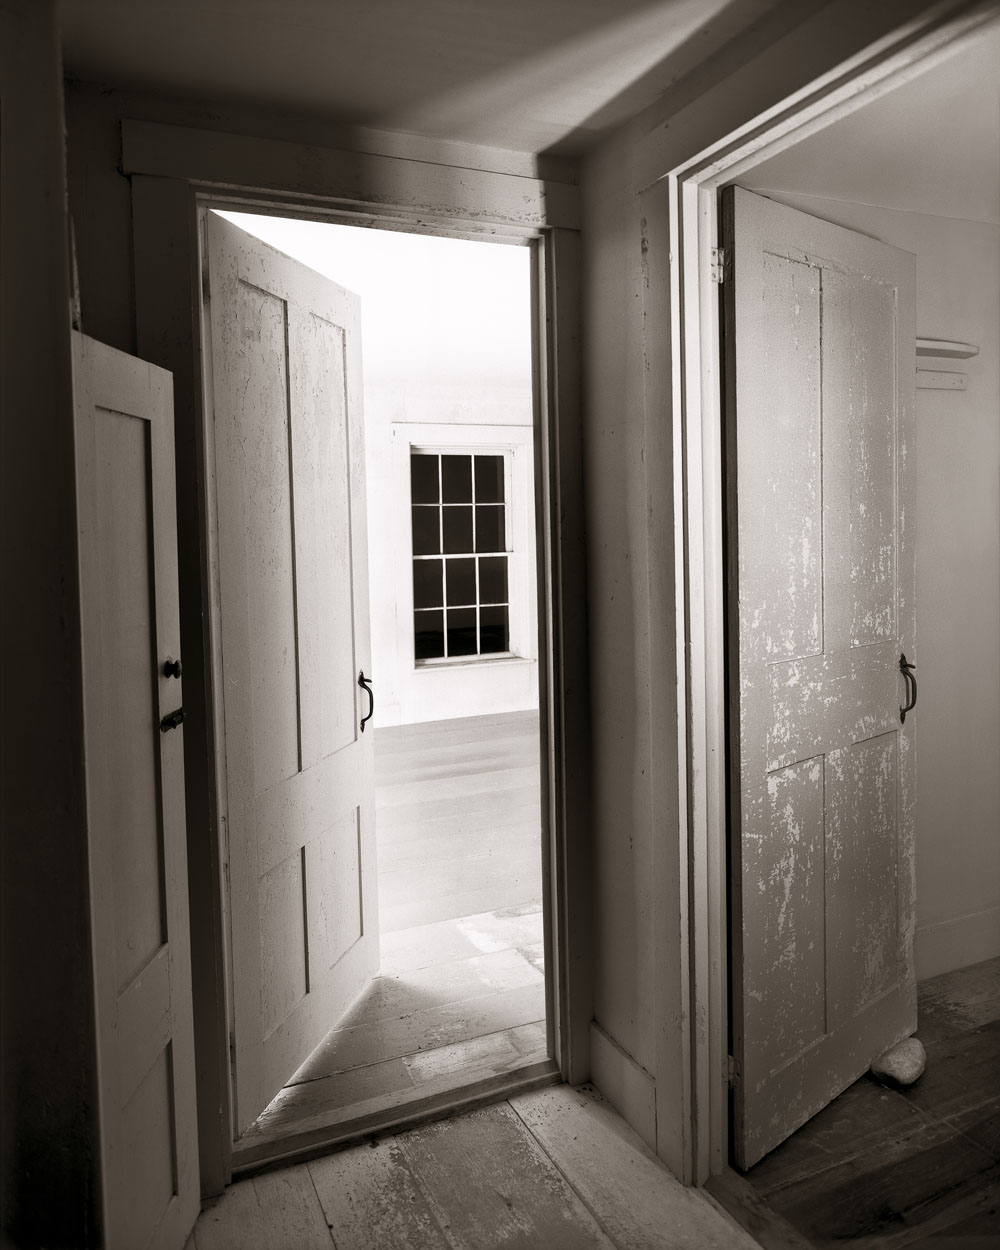 Linda Connor, Doors And Window…after Charles Sheeler, from The Olson House Portfolio, 2006, archival pigment print, price on request